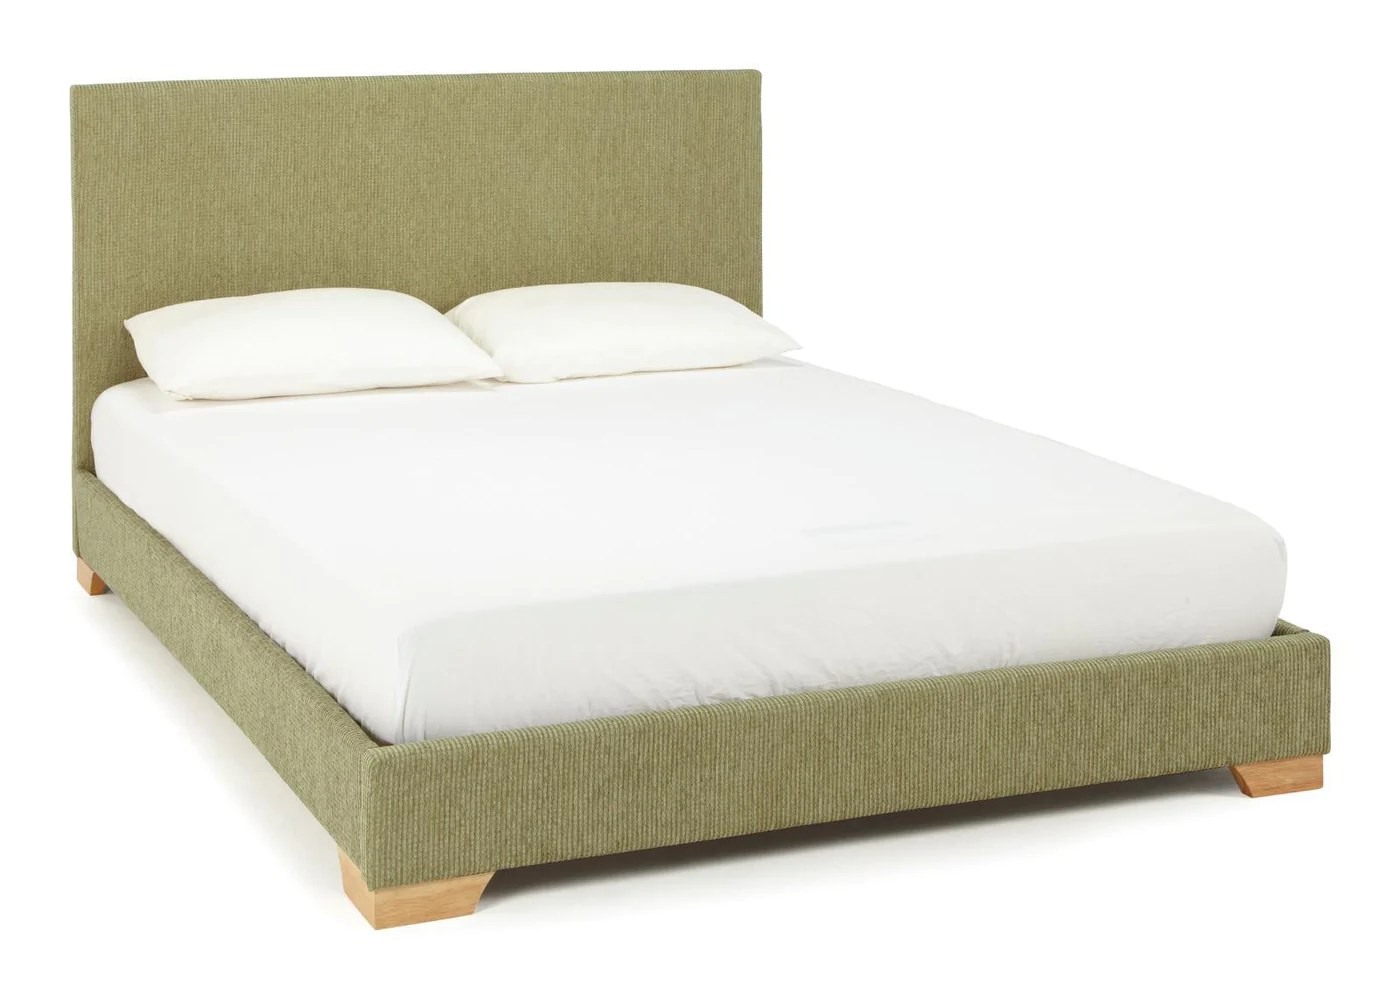 Boxspring Gestell Boxspring 120 Cm Trendy Pages Text Version Fliphtml With